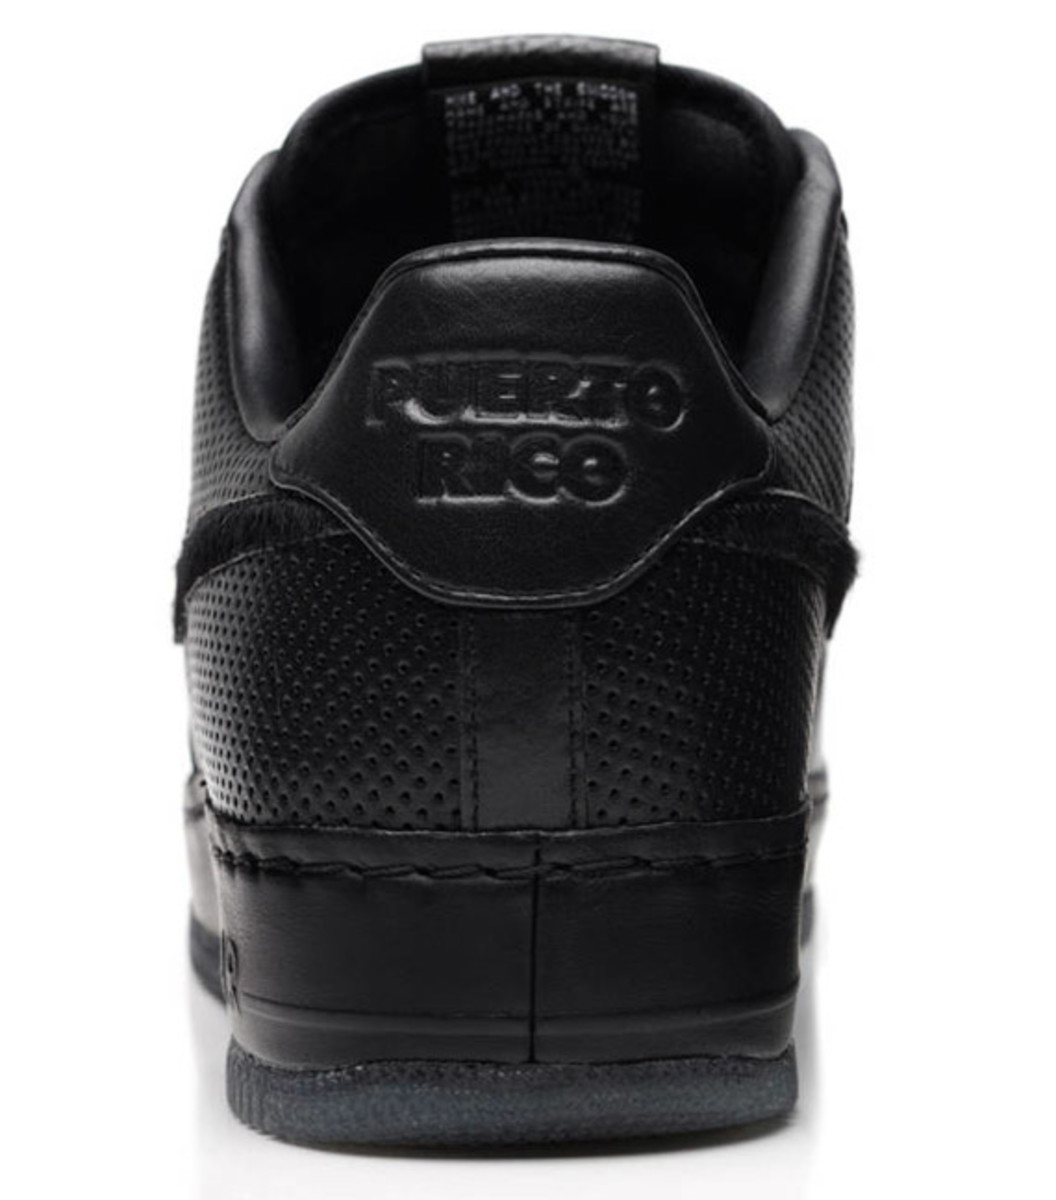 jay-z-nike-air-force-1-all-black-everything-puerto-rico-07